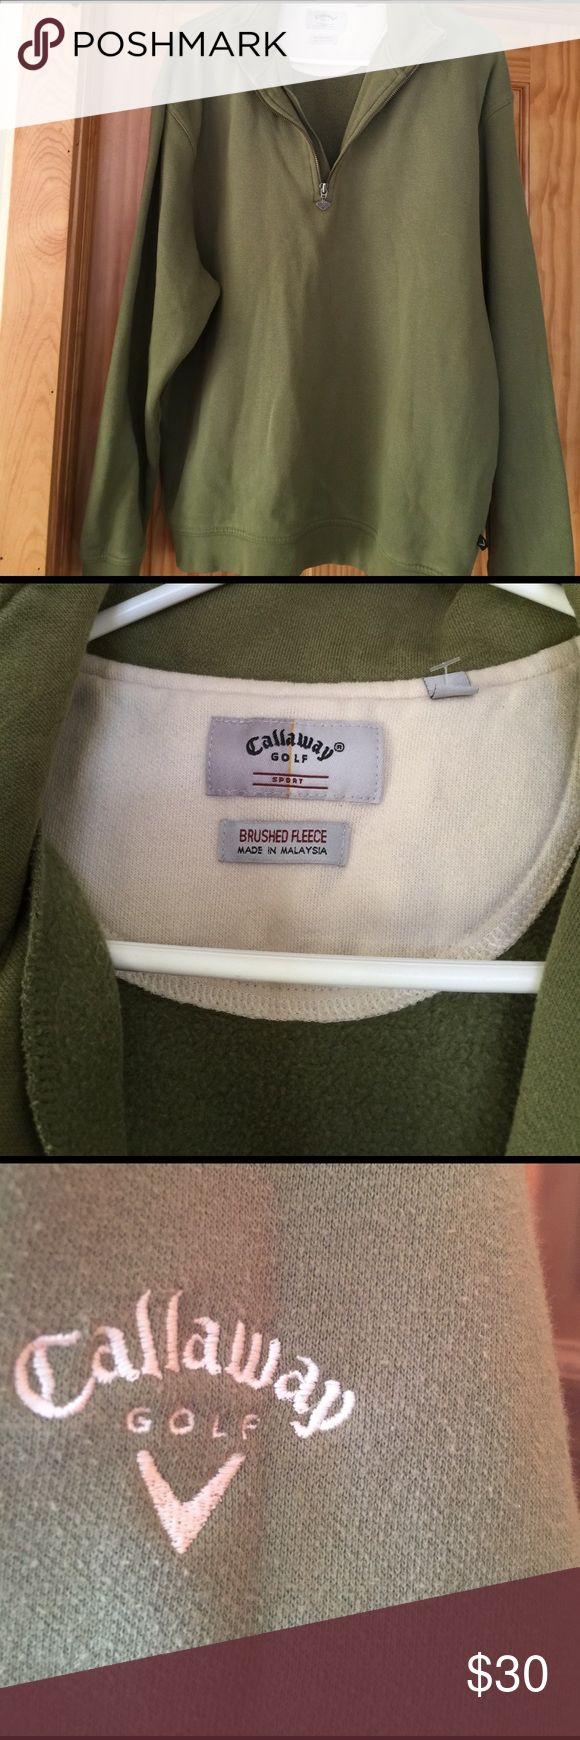 Callaway Golf Pullover Pull over Calaway Golf sweater, worn a few times, very nice, keeps you warm but breathes well. calaway golf Sweaters Zip Up